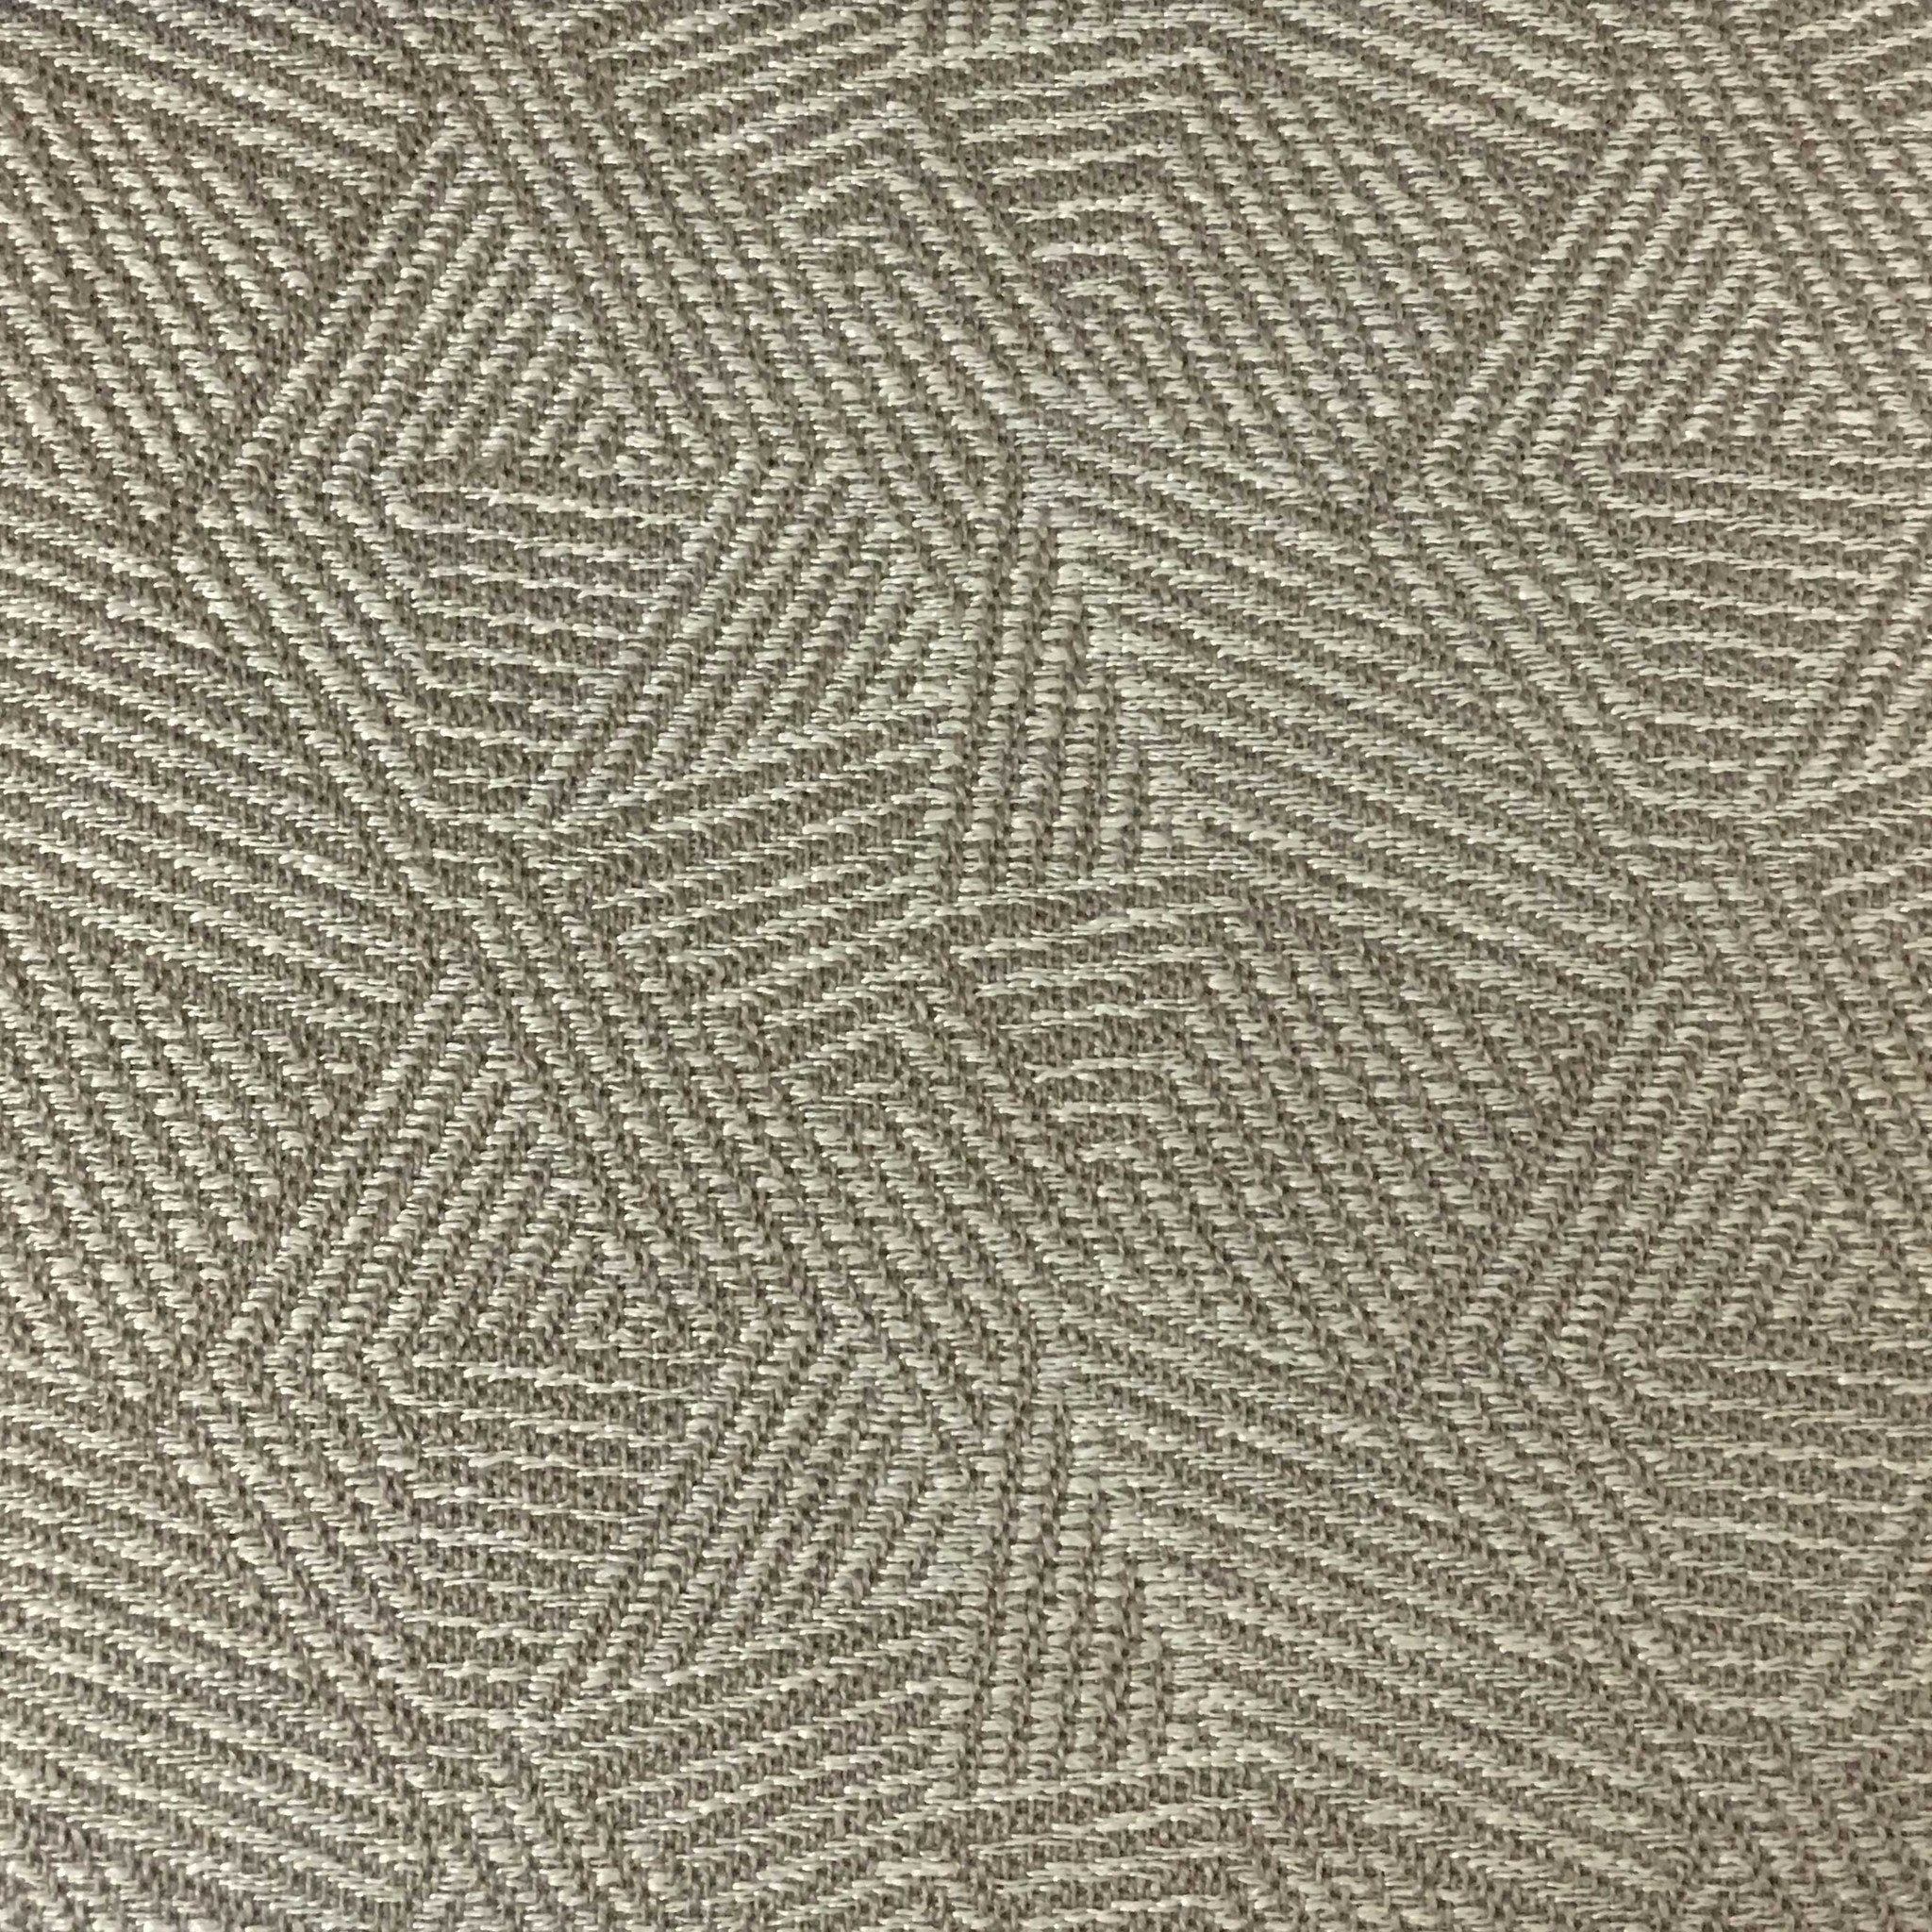 Upholstery fabric geometric design fabric home decor aqua blue -  Enford Jacquard Fabric Woven Texture Designer Pattern Upholstery Fabric By The Yard Available In